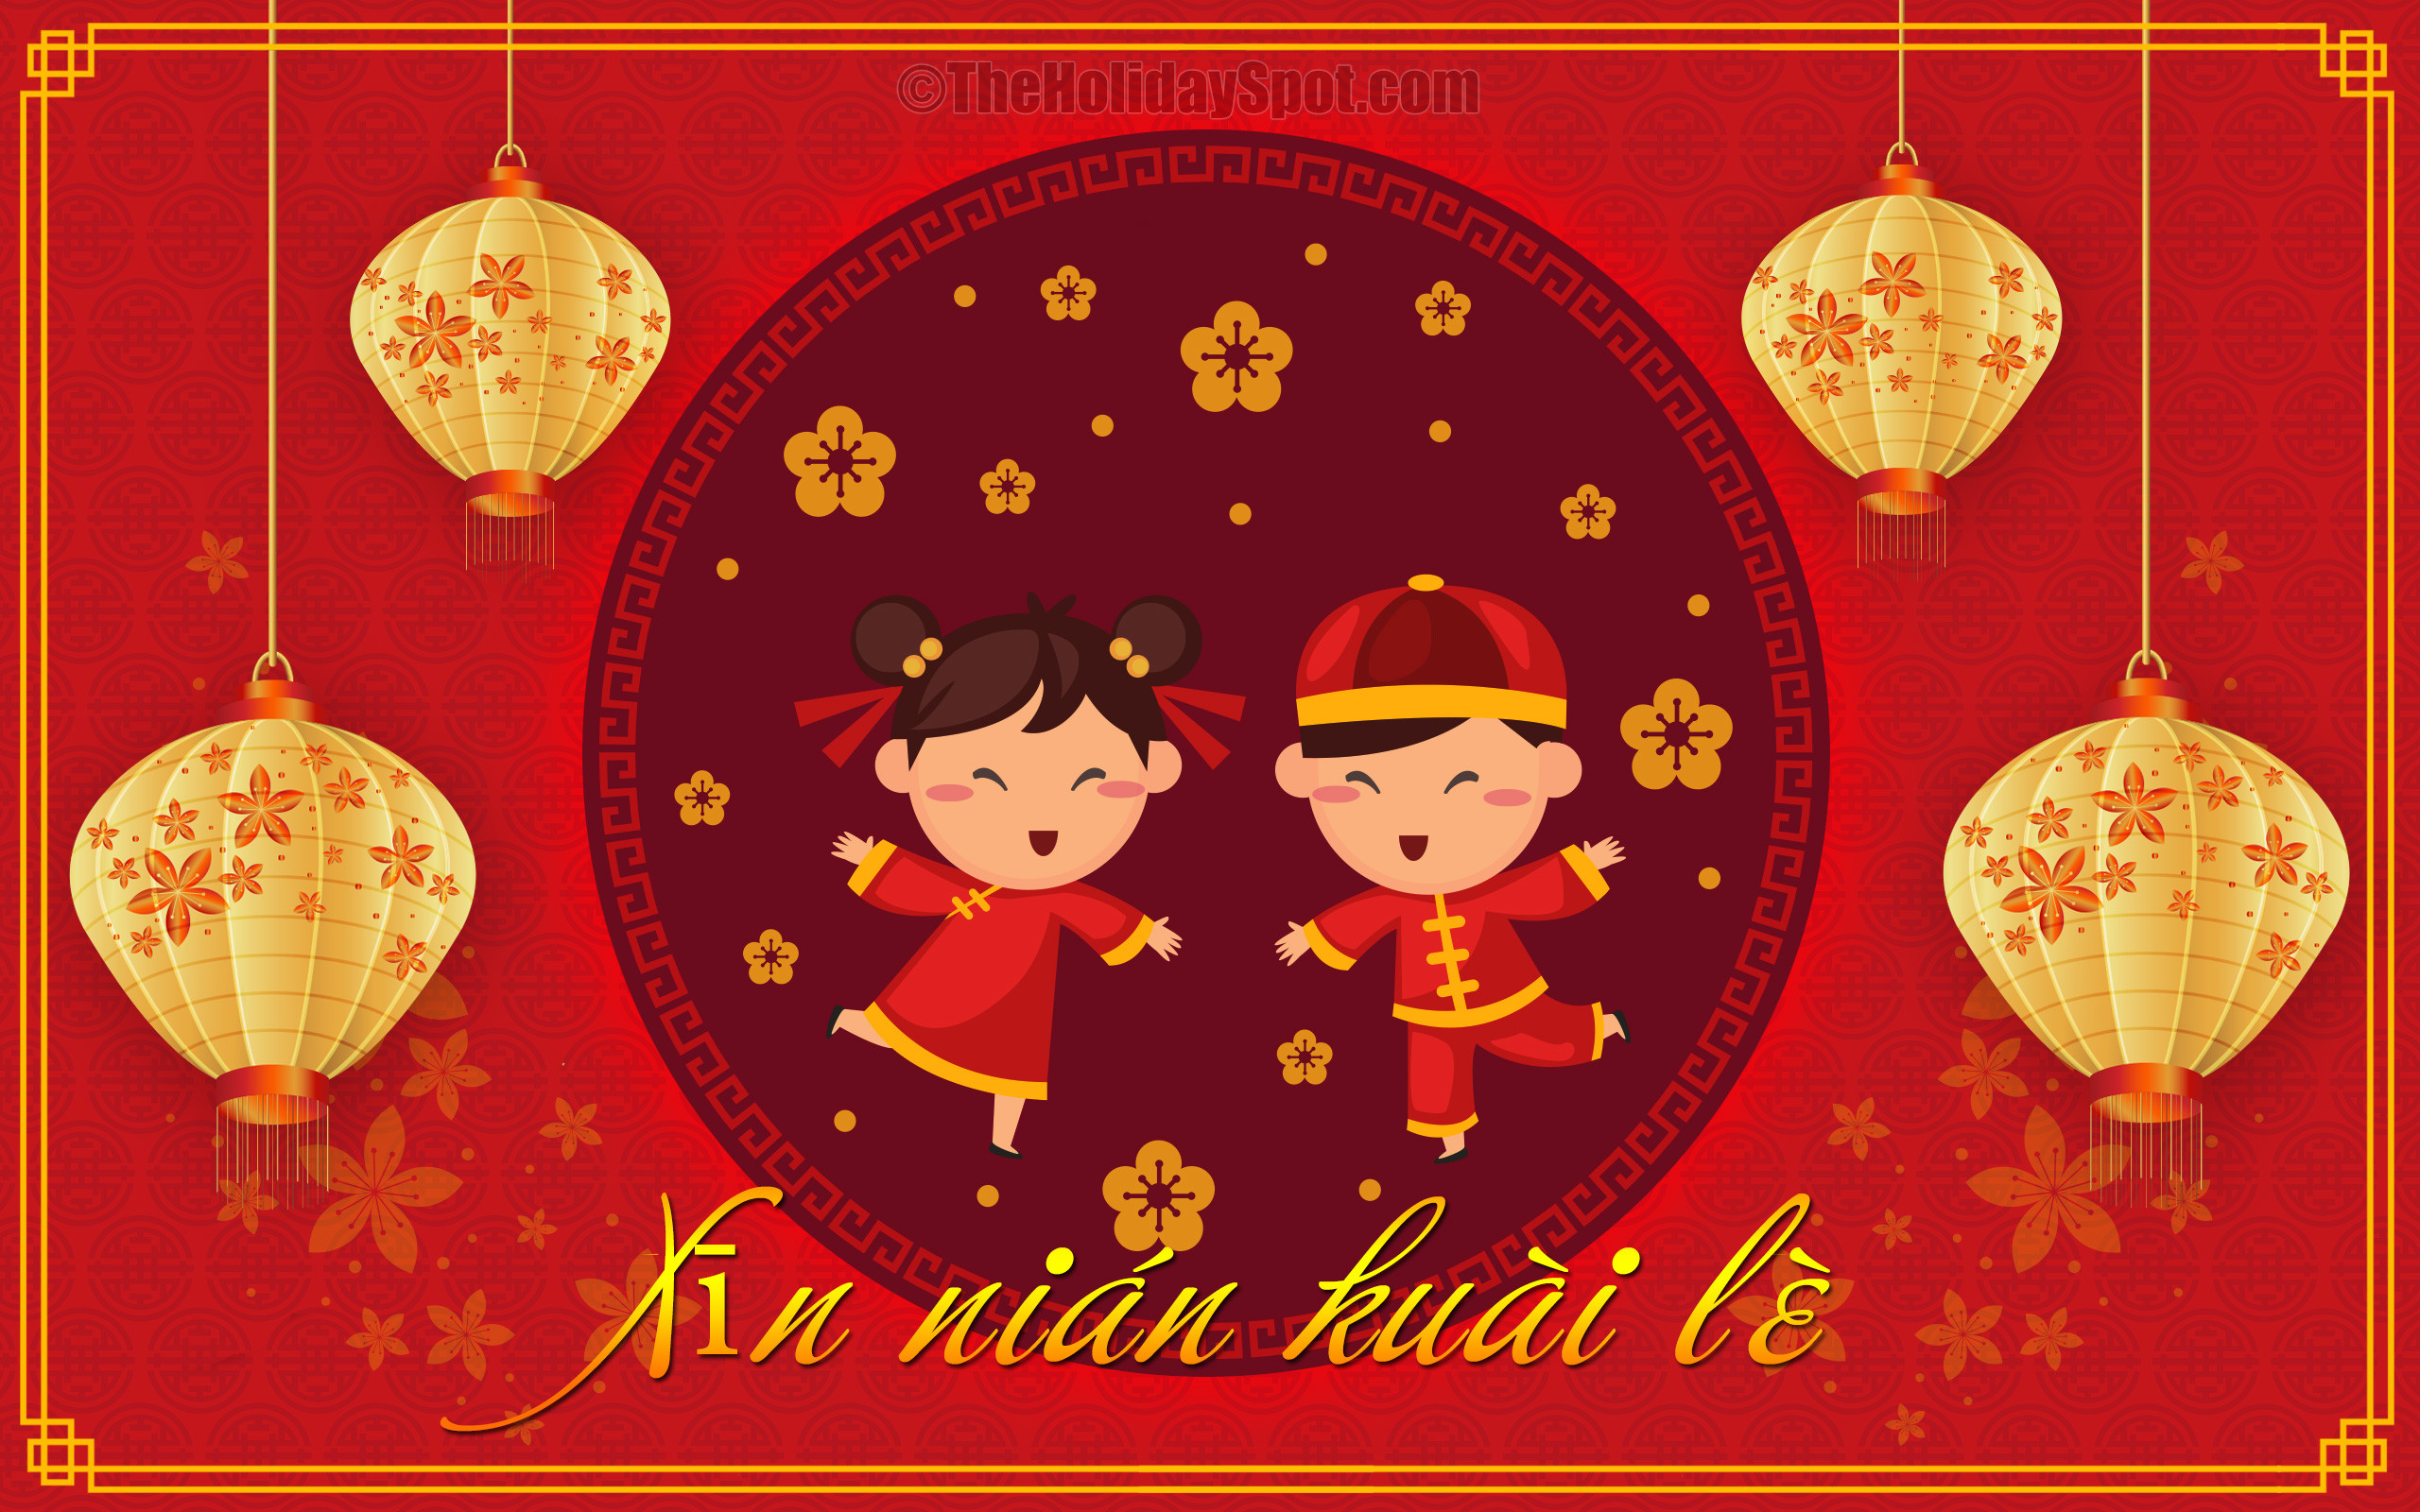 2560x1600 Chinese new year wallpaper with happy new year wishes jpg  Cny 2018  wallpaper cute